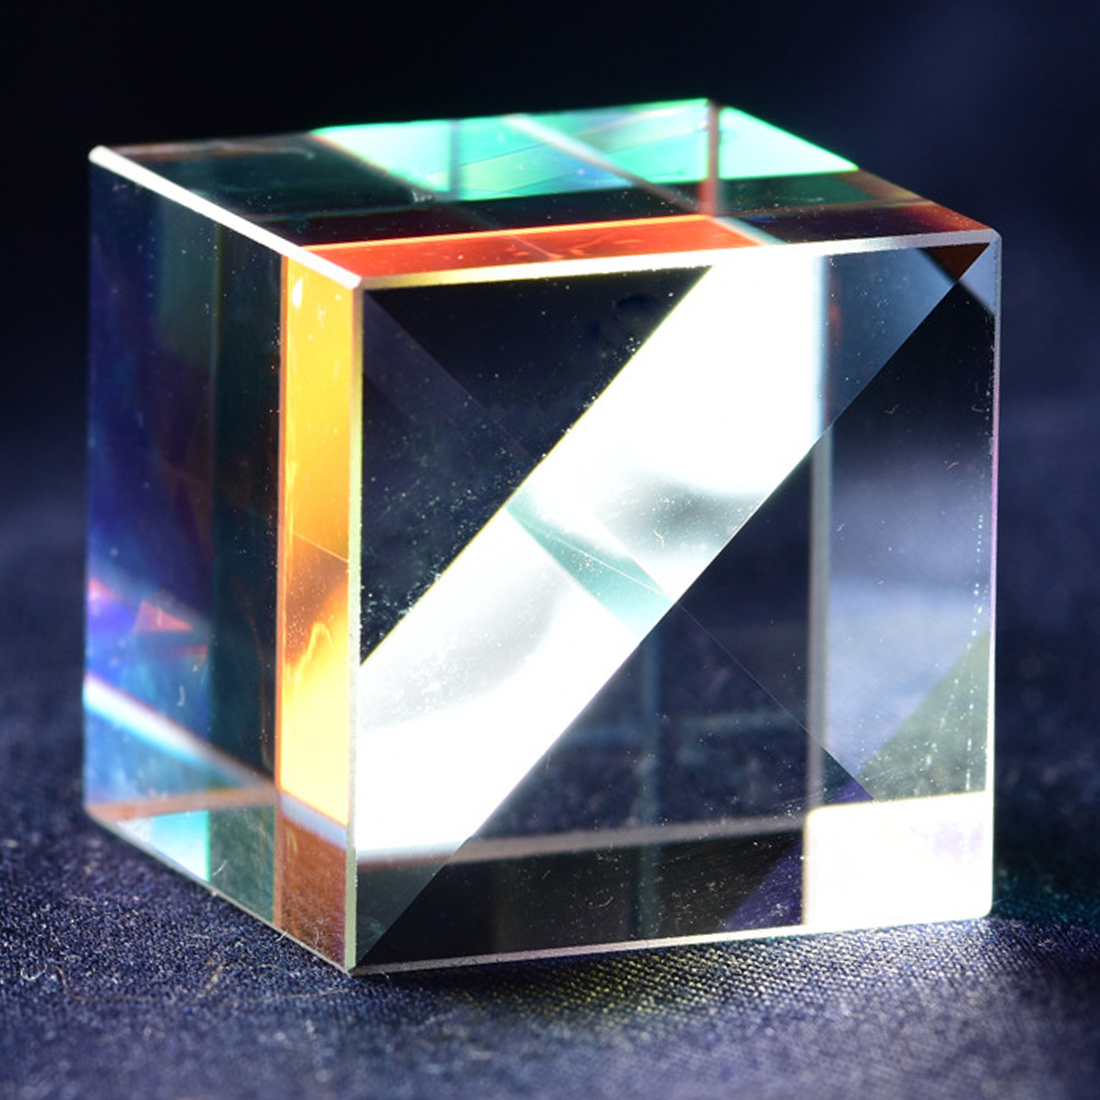 Optical Glass Cube Defective Cross Dichroic Prism Mirror Combiner Splitter Decor 18x18mm Transparent Module Toy Teaching Tools